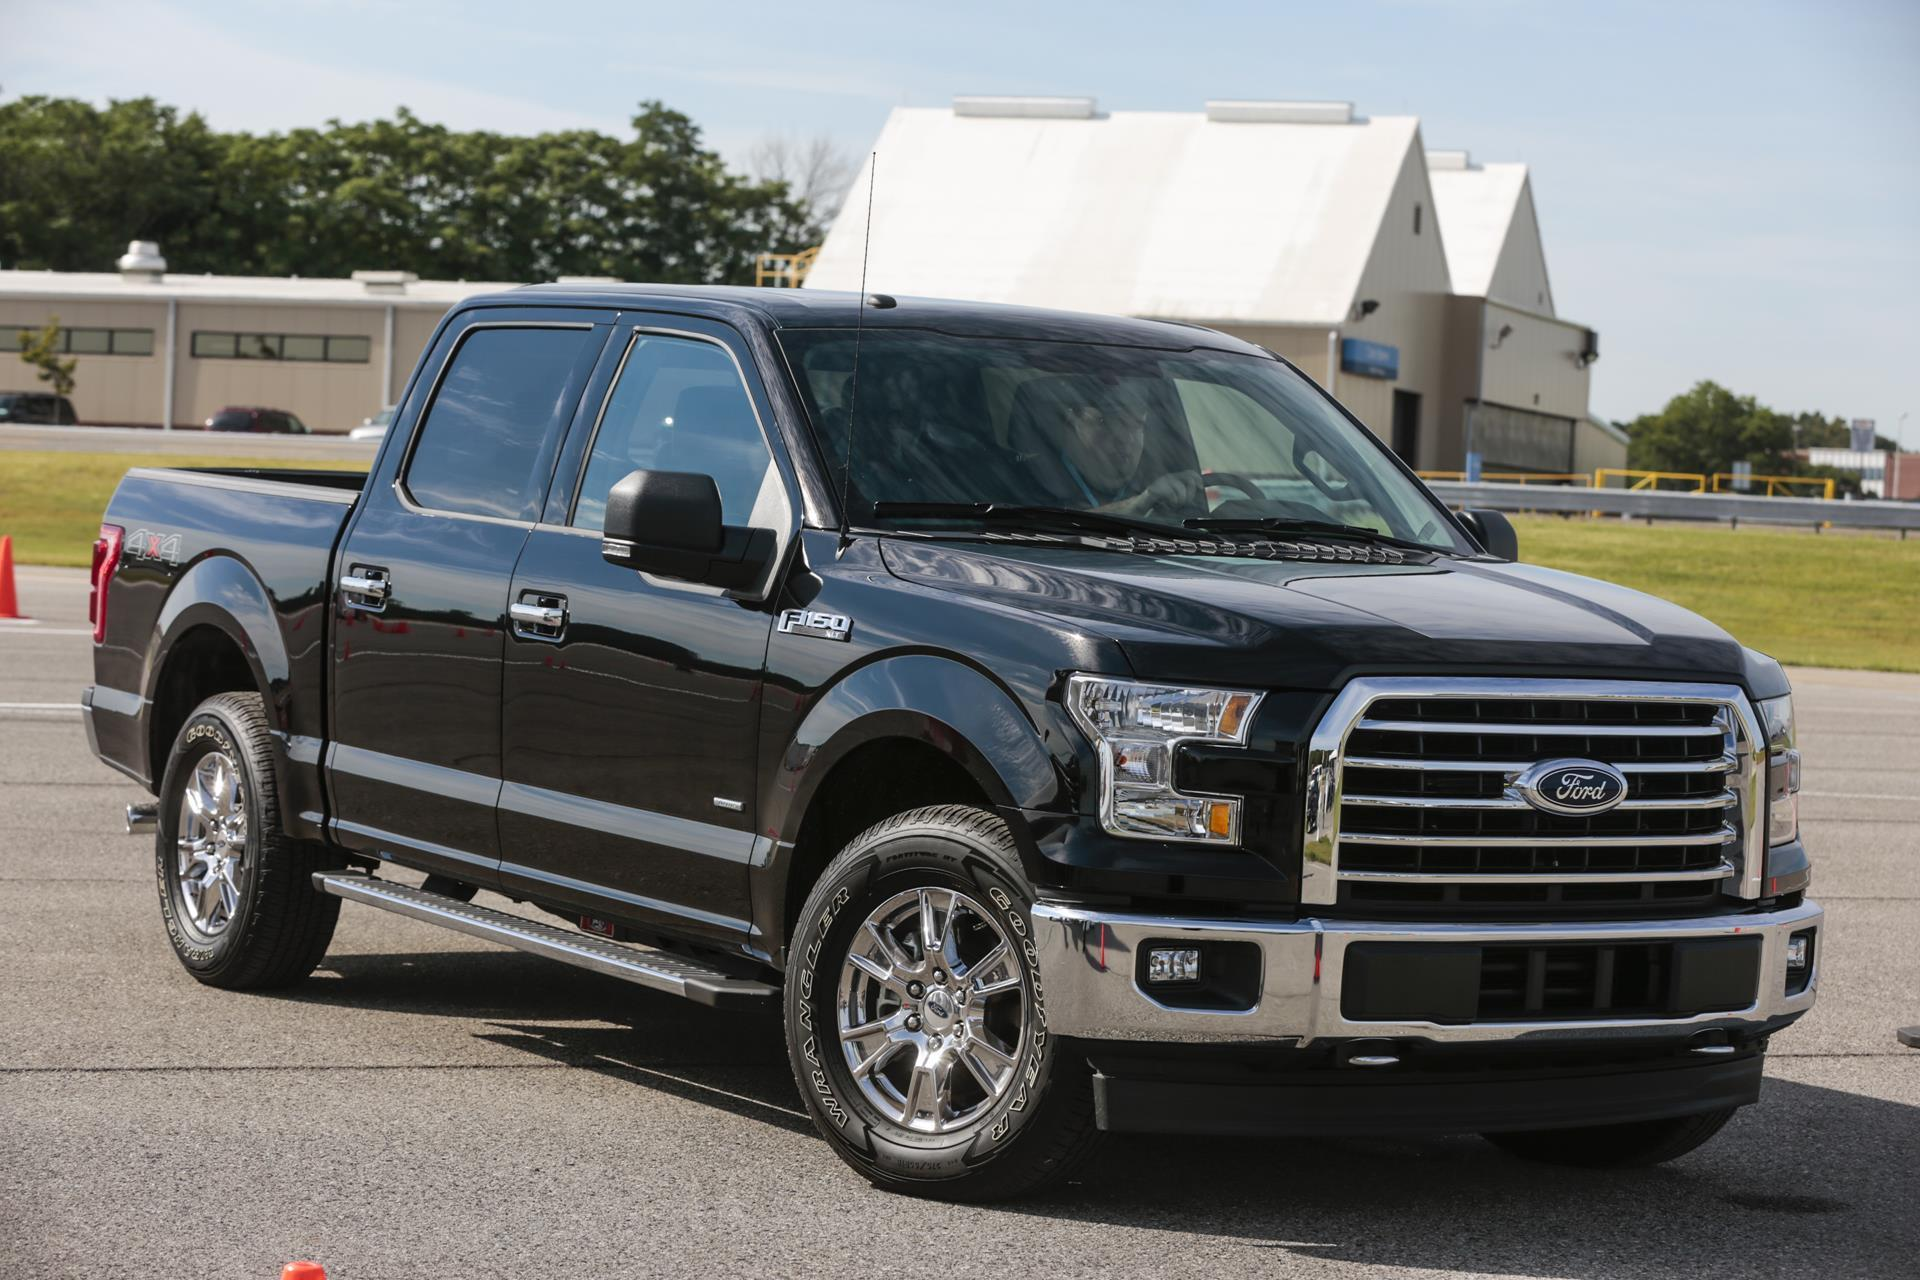 2017 ford f 150 technical specifications and data engine dimensions and mechanical details. Black Bedroom Furniture Sets. Home Design Ideas